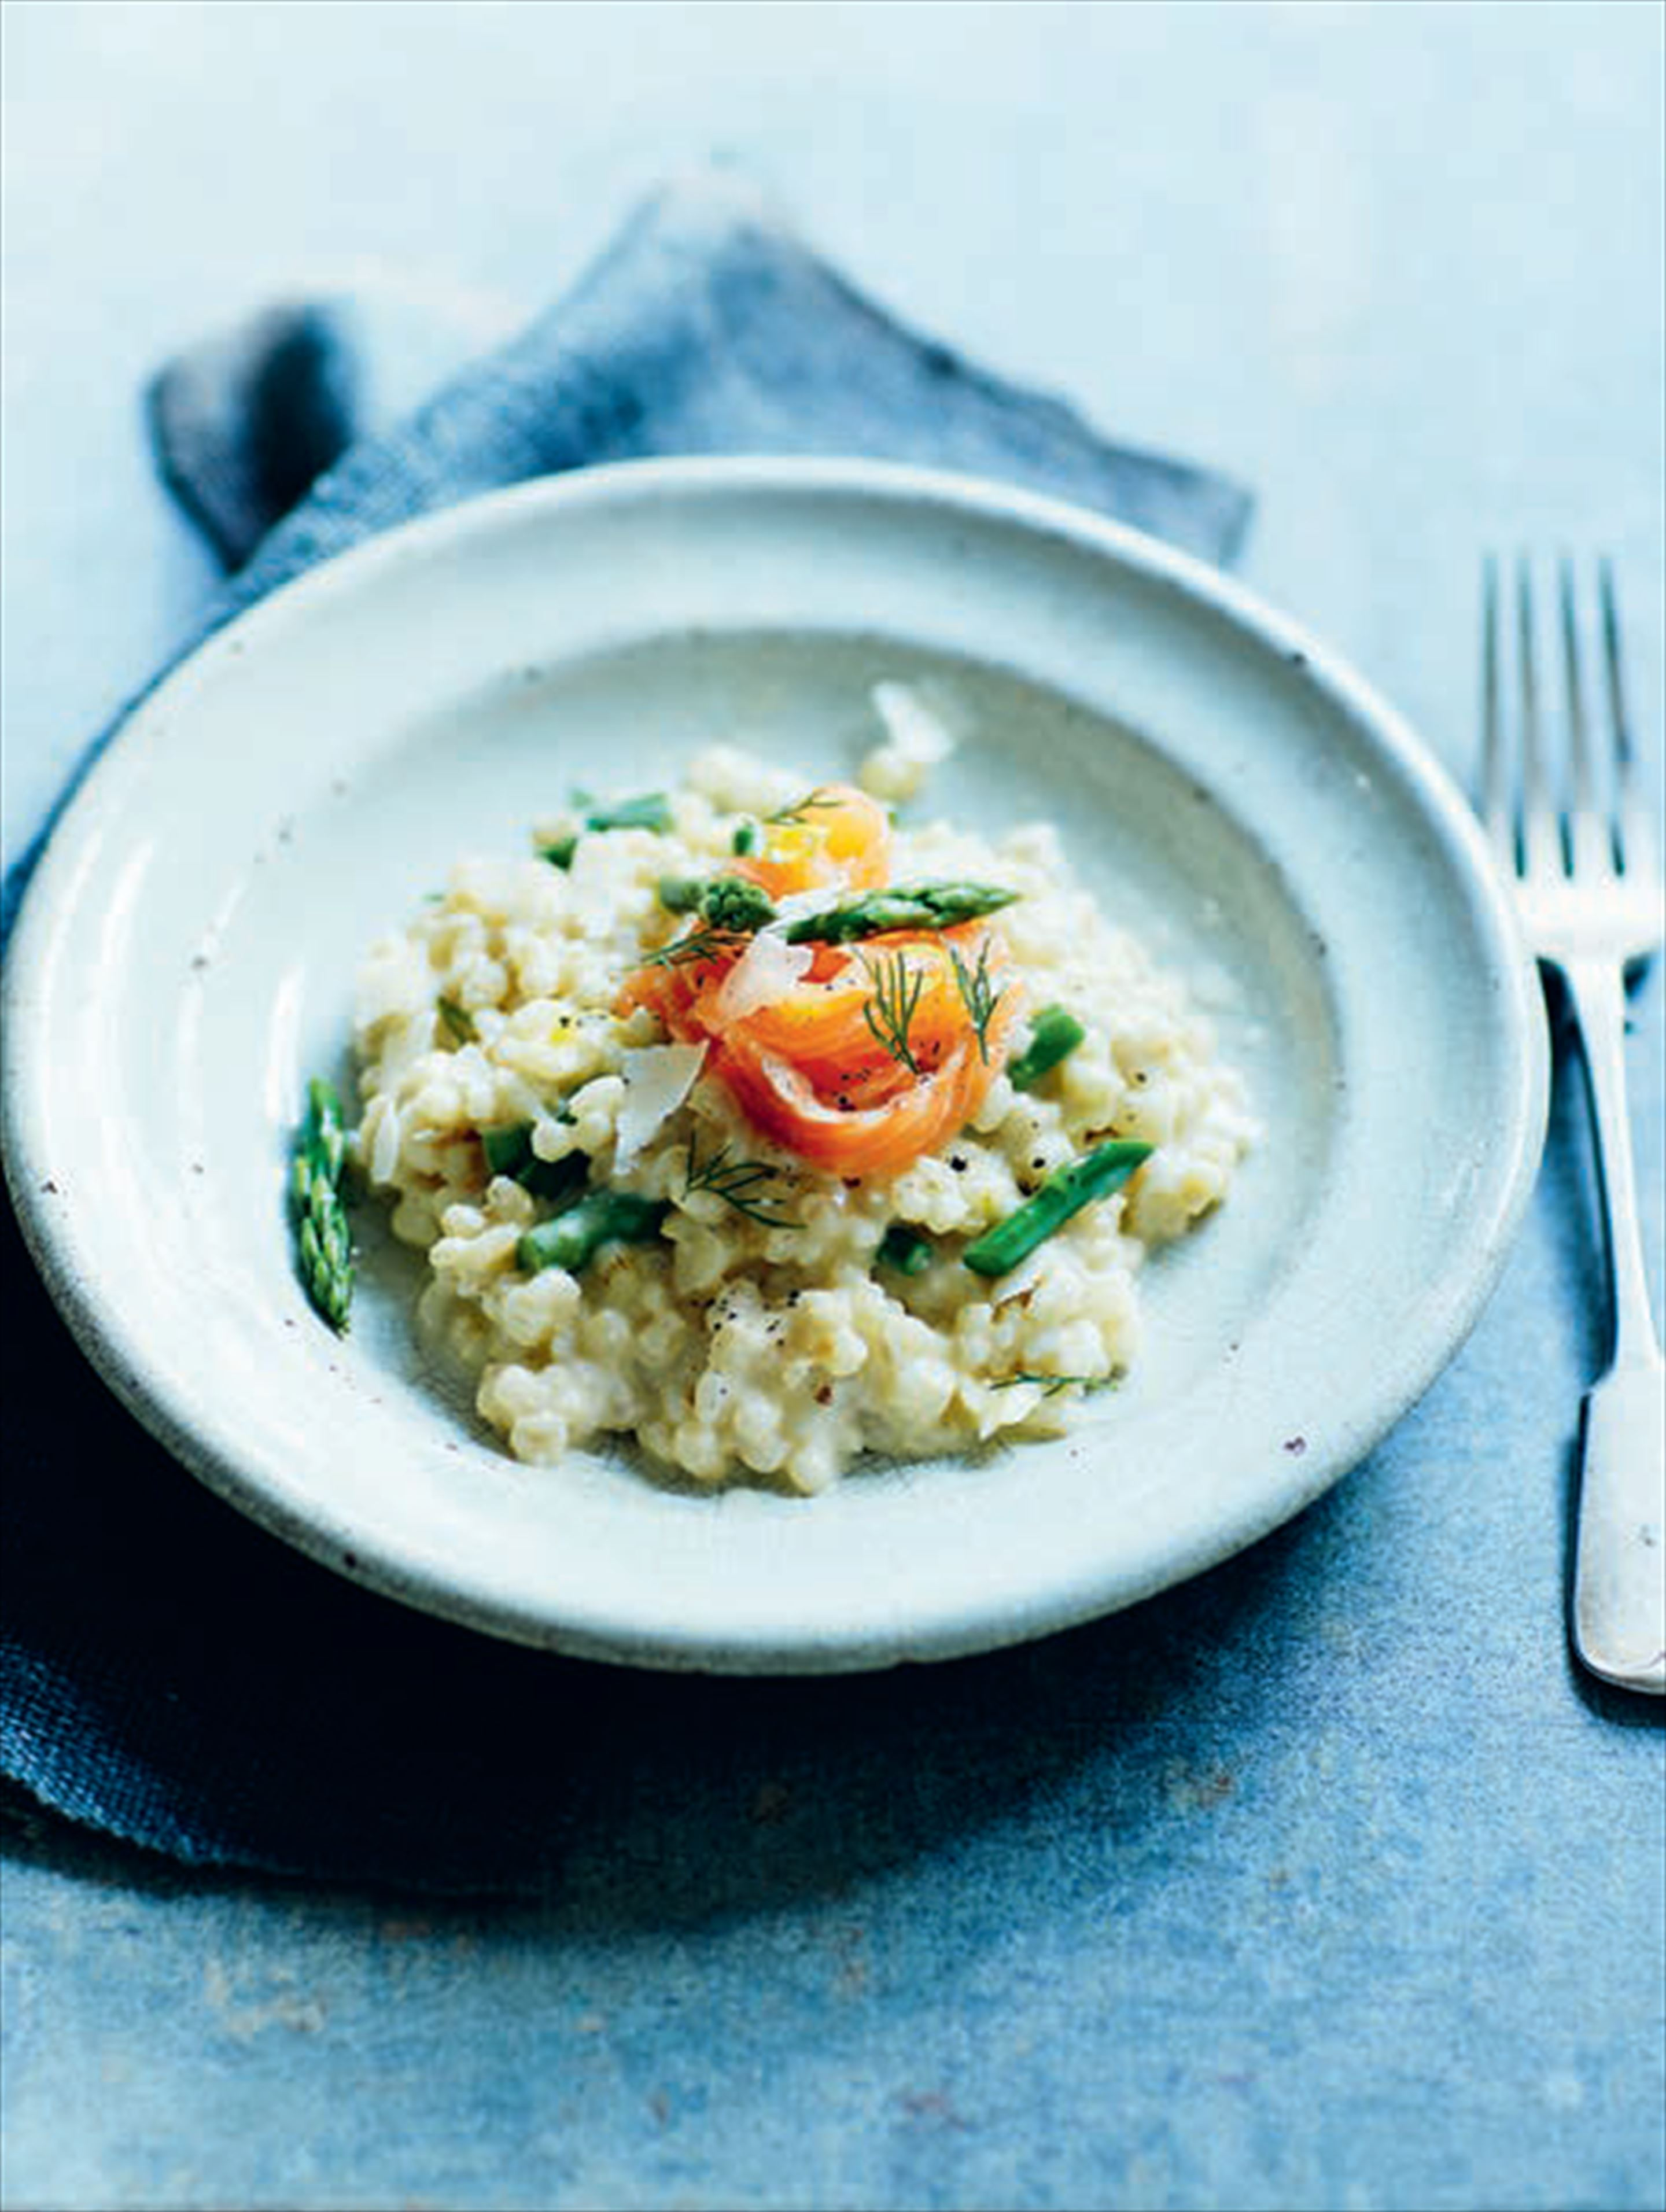 Creamy pearl barley risotto with smoked garlic, asparagus & quick cured salmon